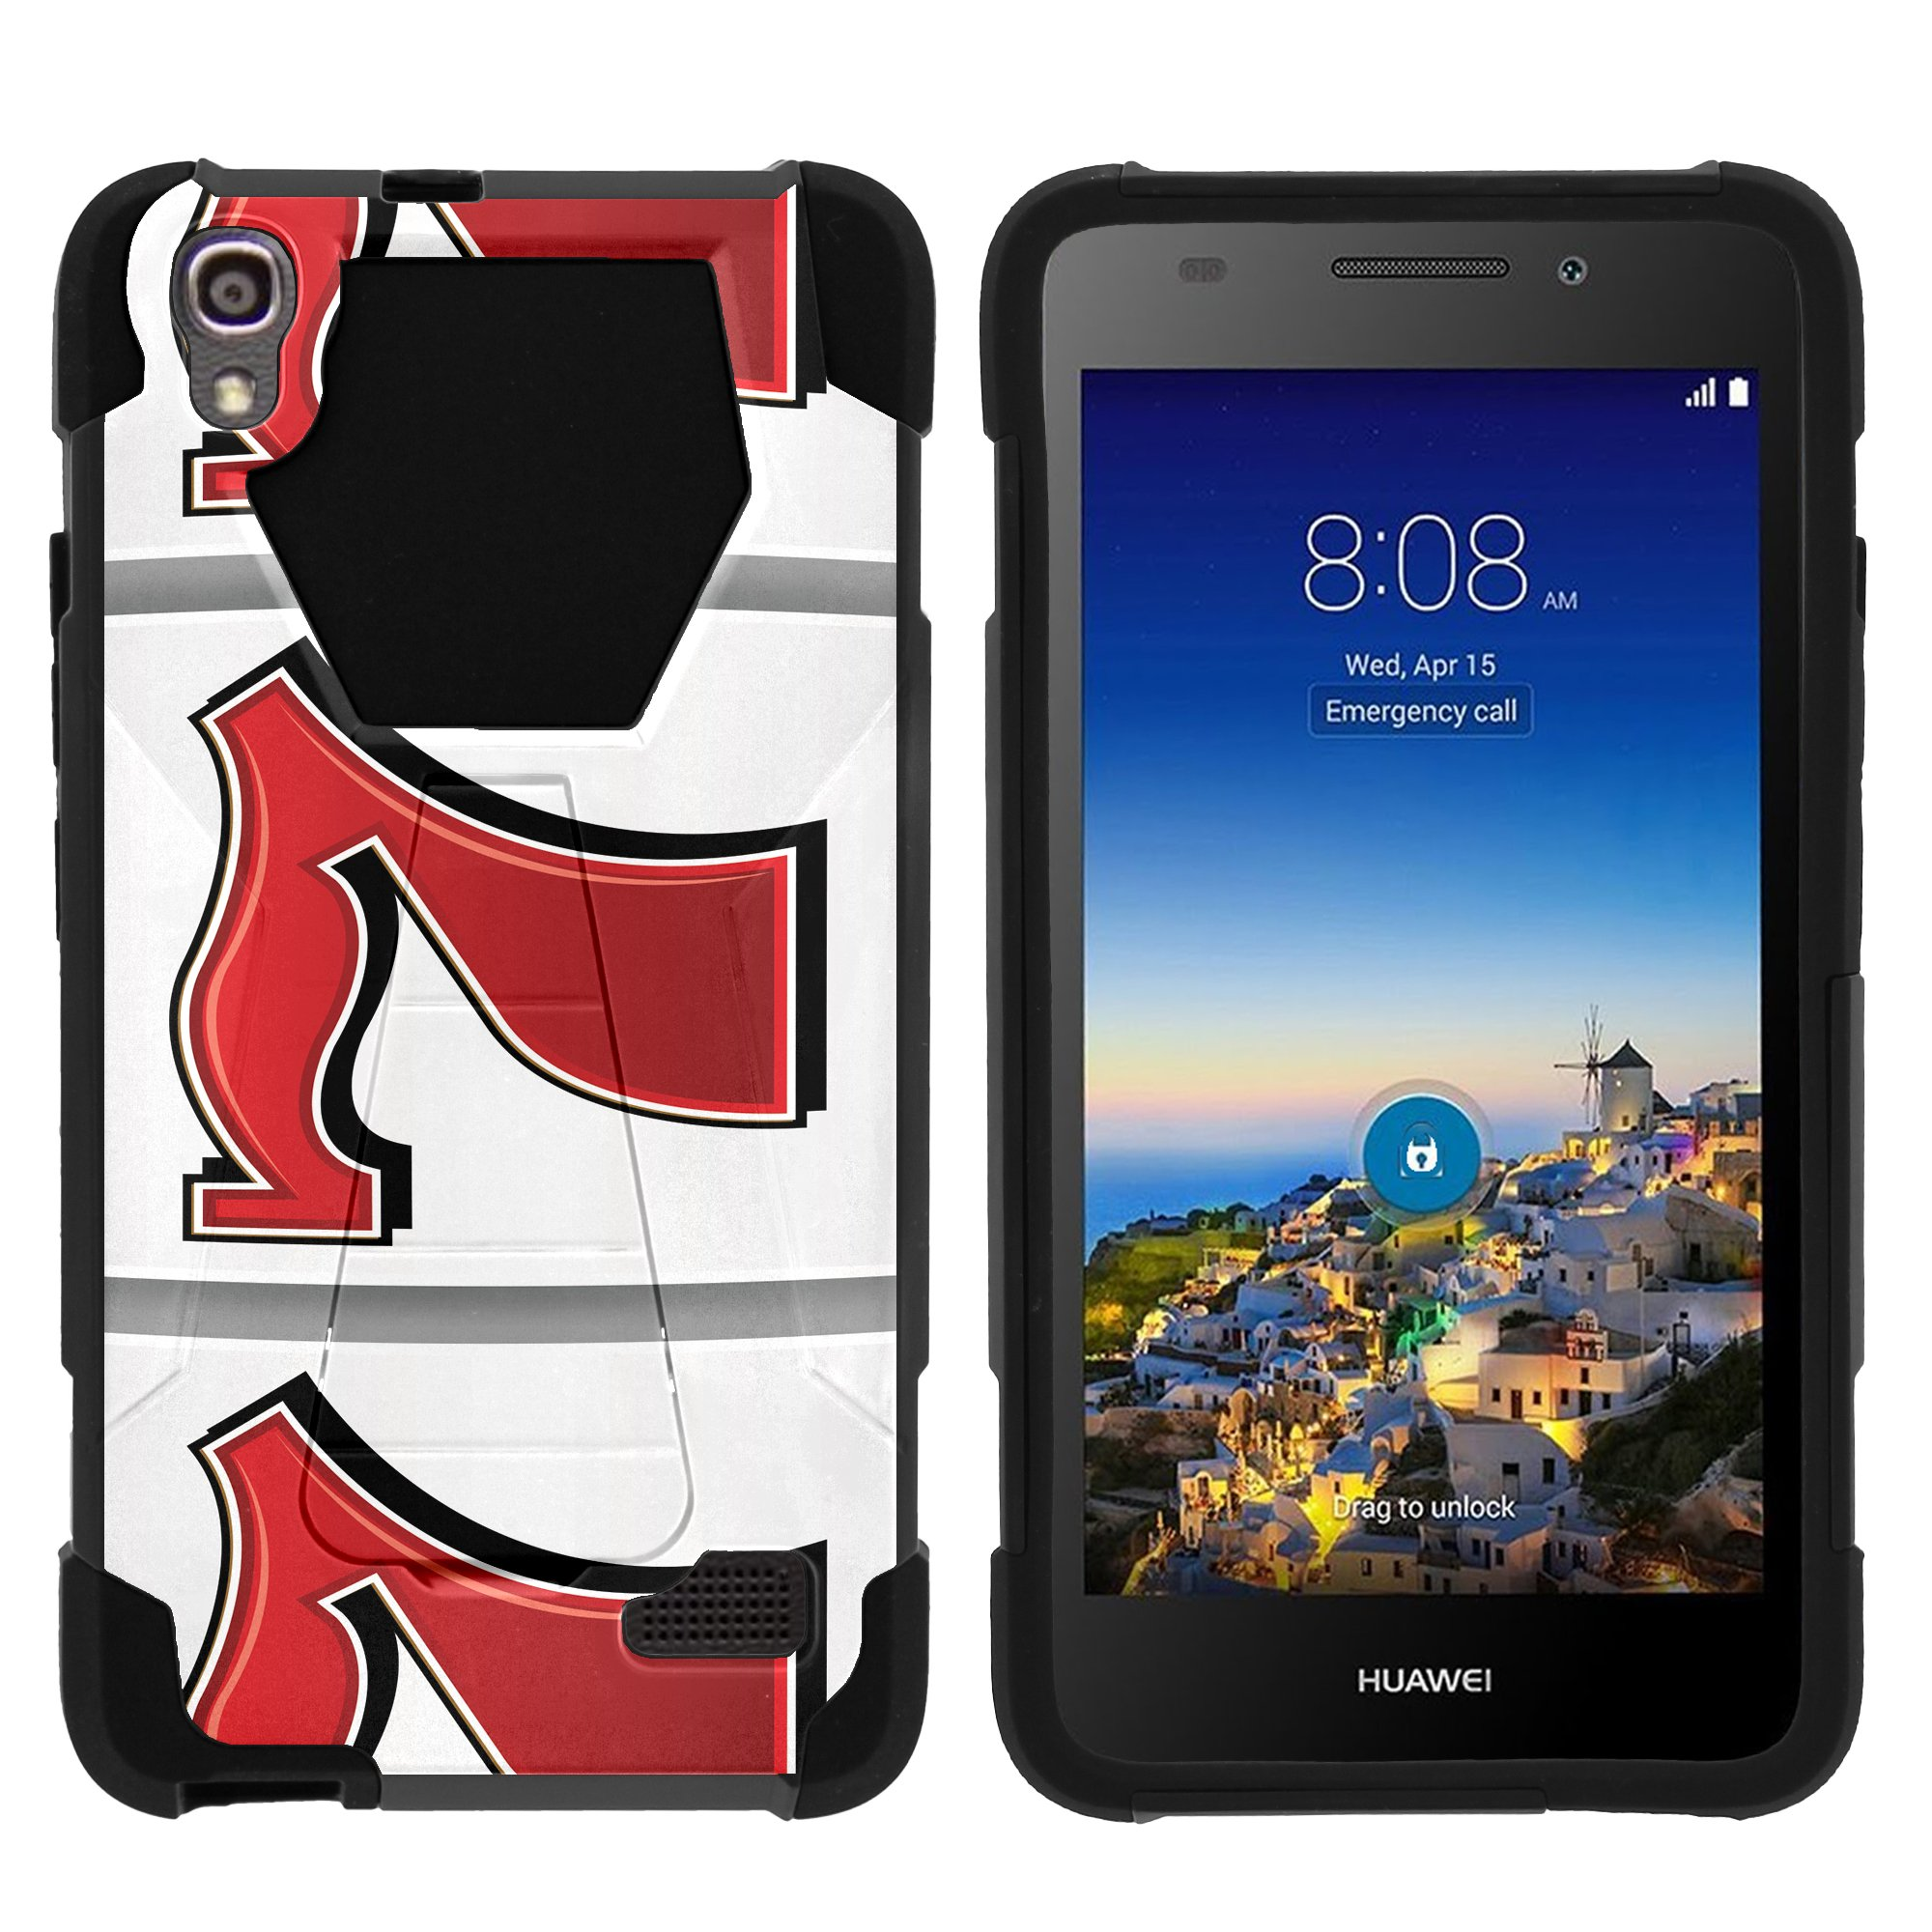 TurtleArmor ® | For Huawei Pronto LTE H891L | SnapTo G620 [Dynamic Shell] Dual Layer Hybrid Silicone Hard Shell Kickstand Case - Lucky 777